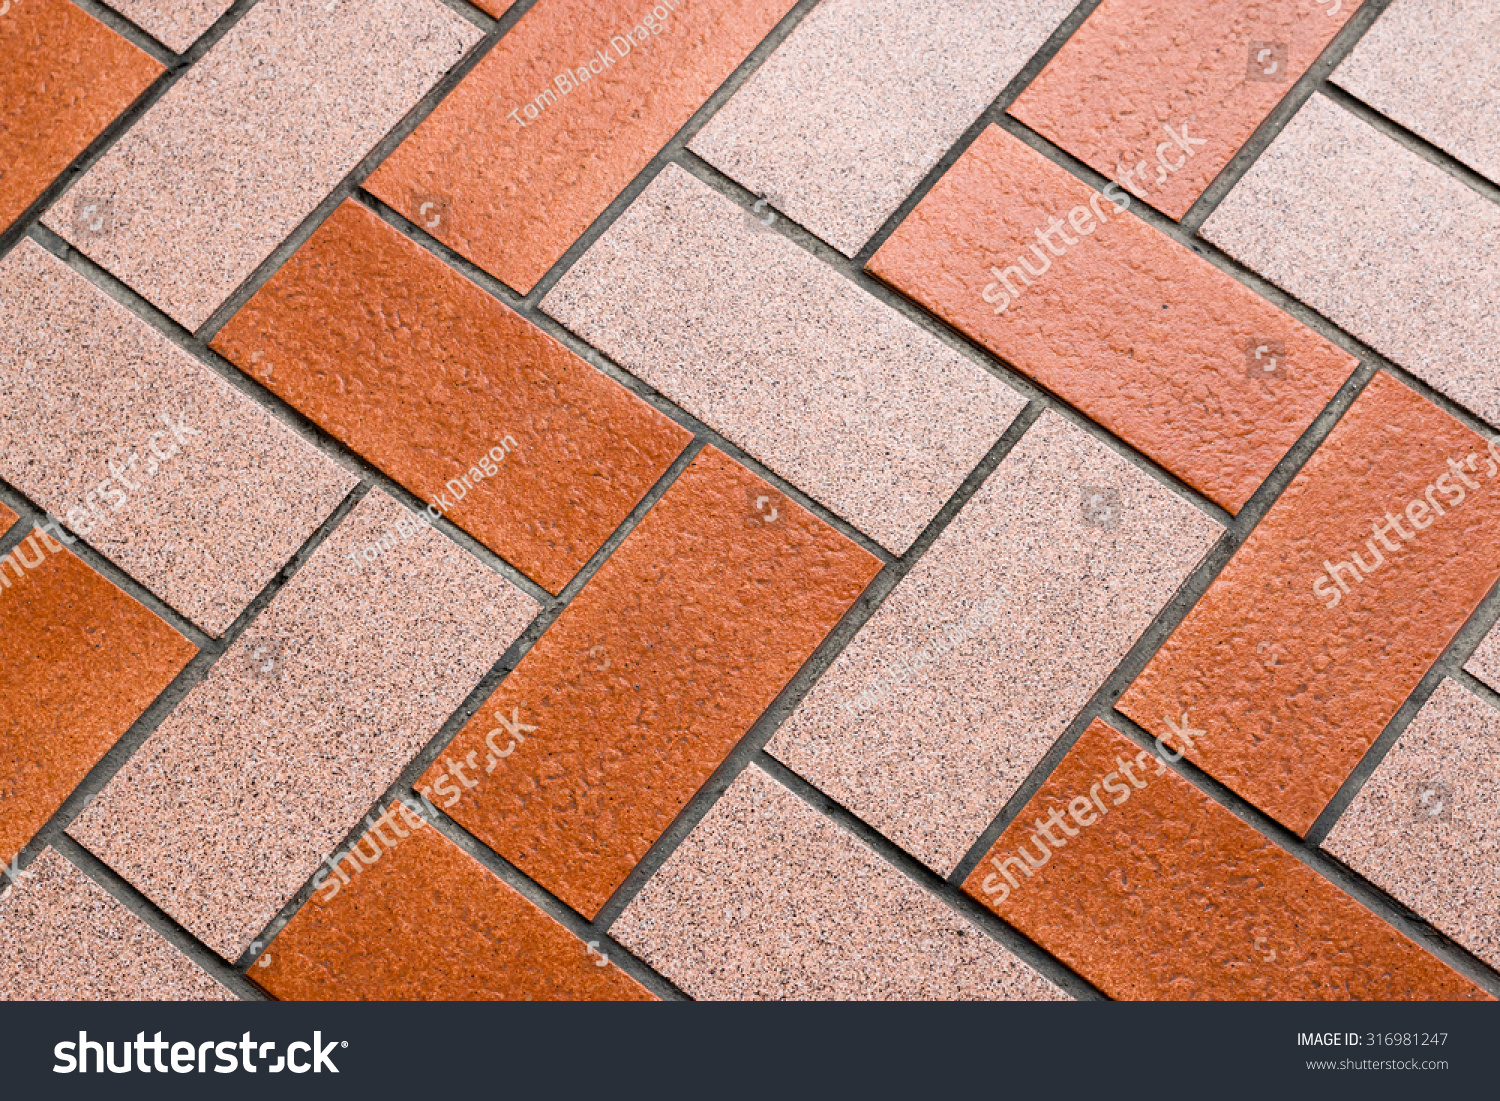 Tile Block Pattern Footpath Tiling House Stock Photo (Royalty Free ...